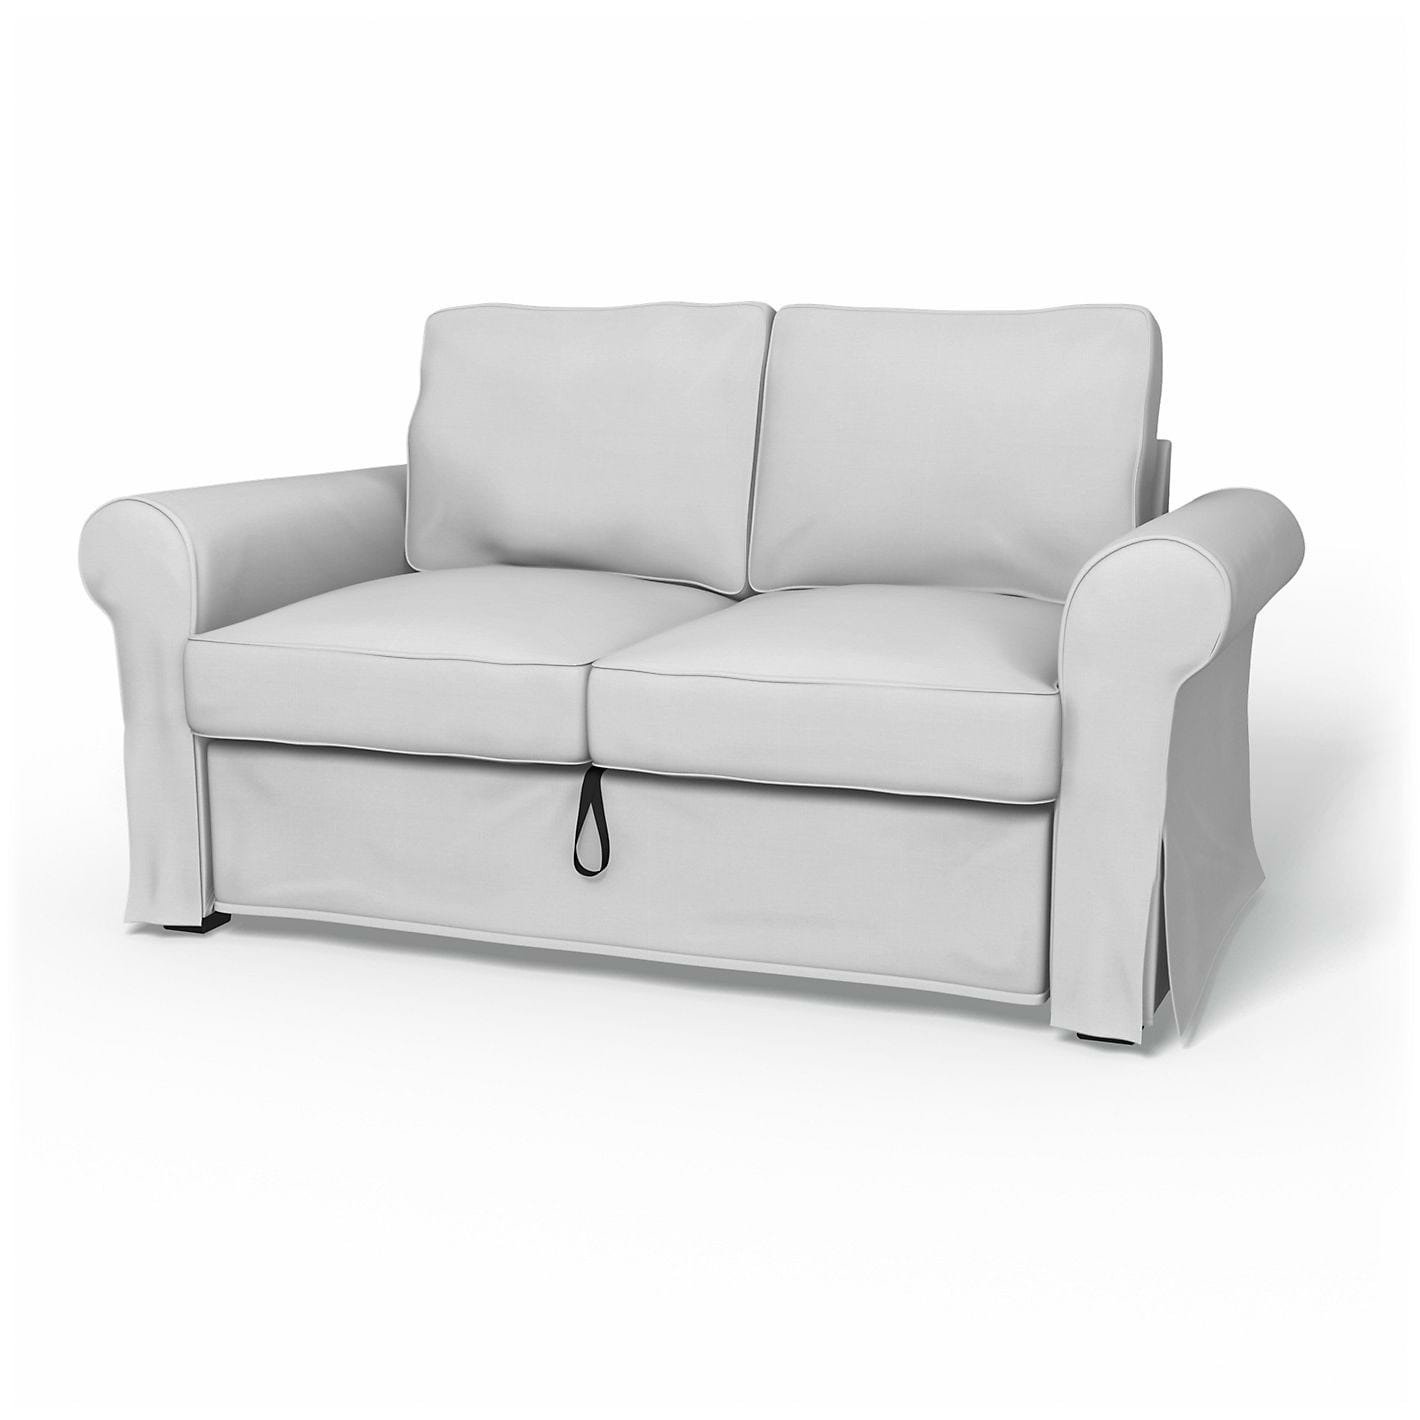 Surprising Sofa Covers For Ikea Couches Bemz Pdpeps Interior Chair Design Pdpepsorg